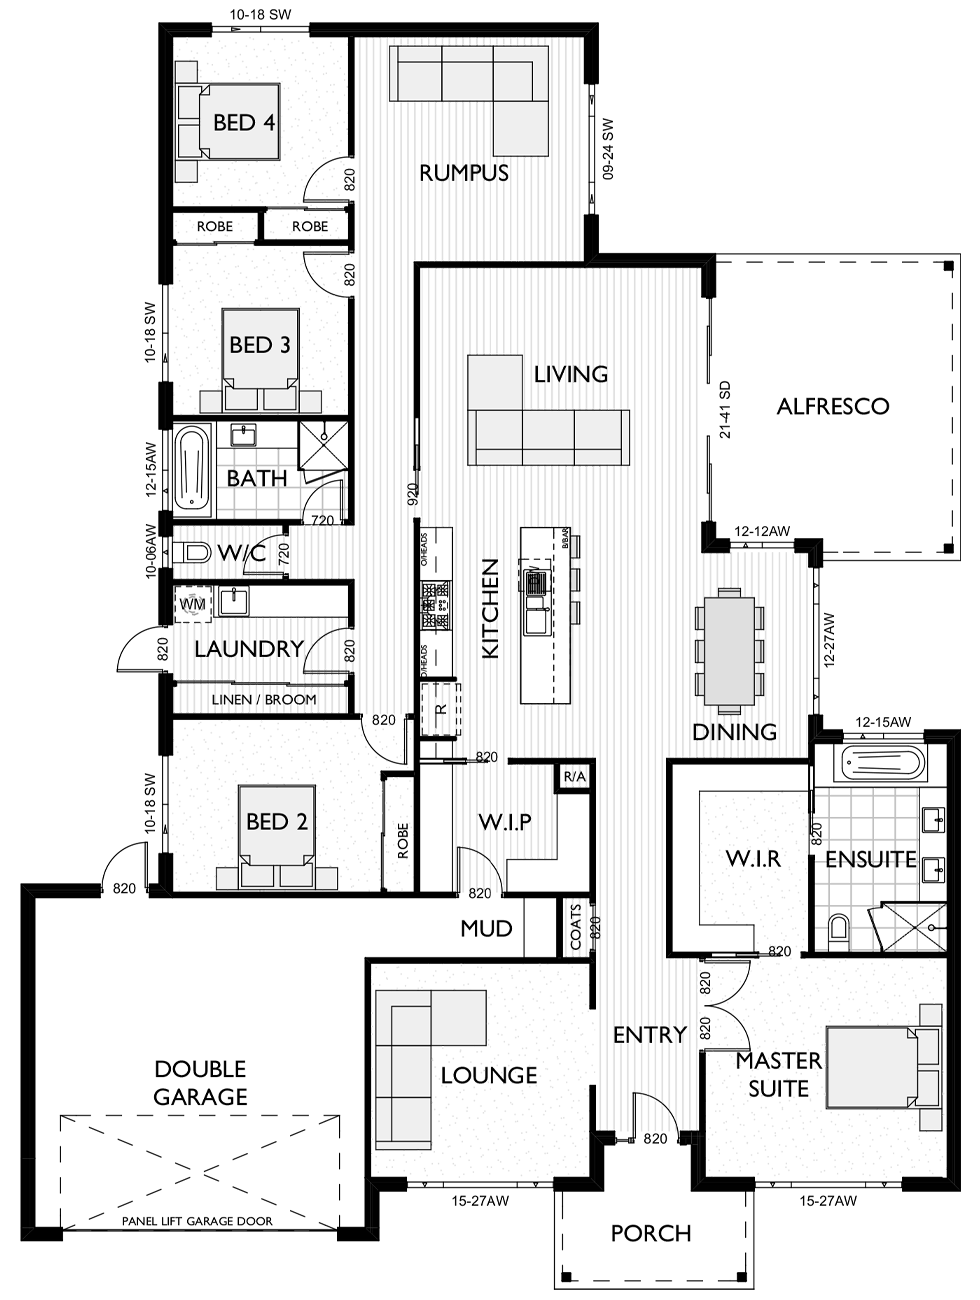 Floor Plan for 4 bedroom home Evie 32 designed by Virtue Homes